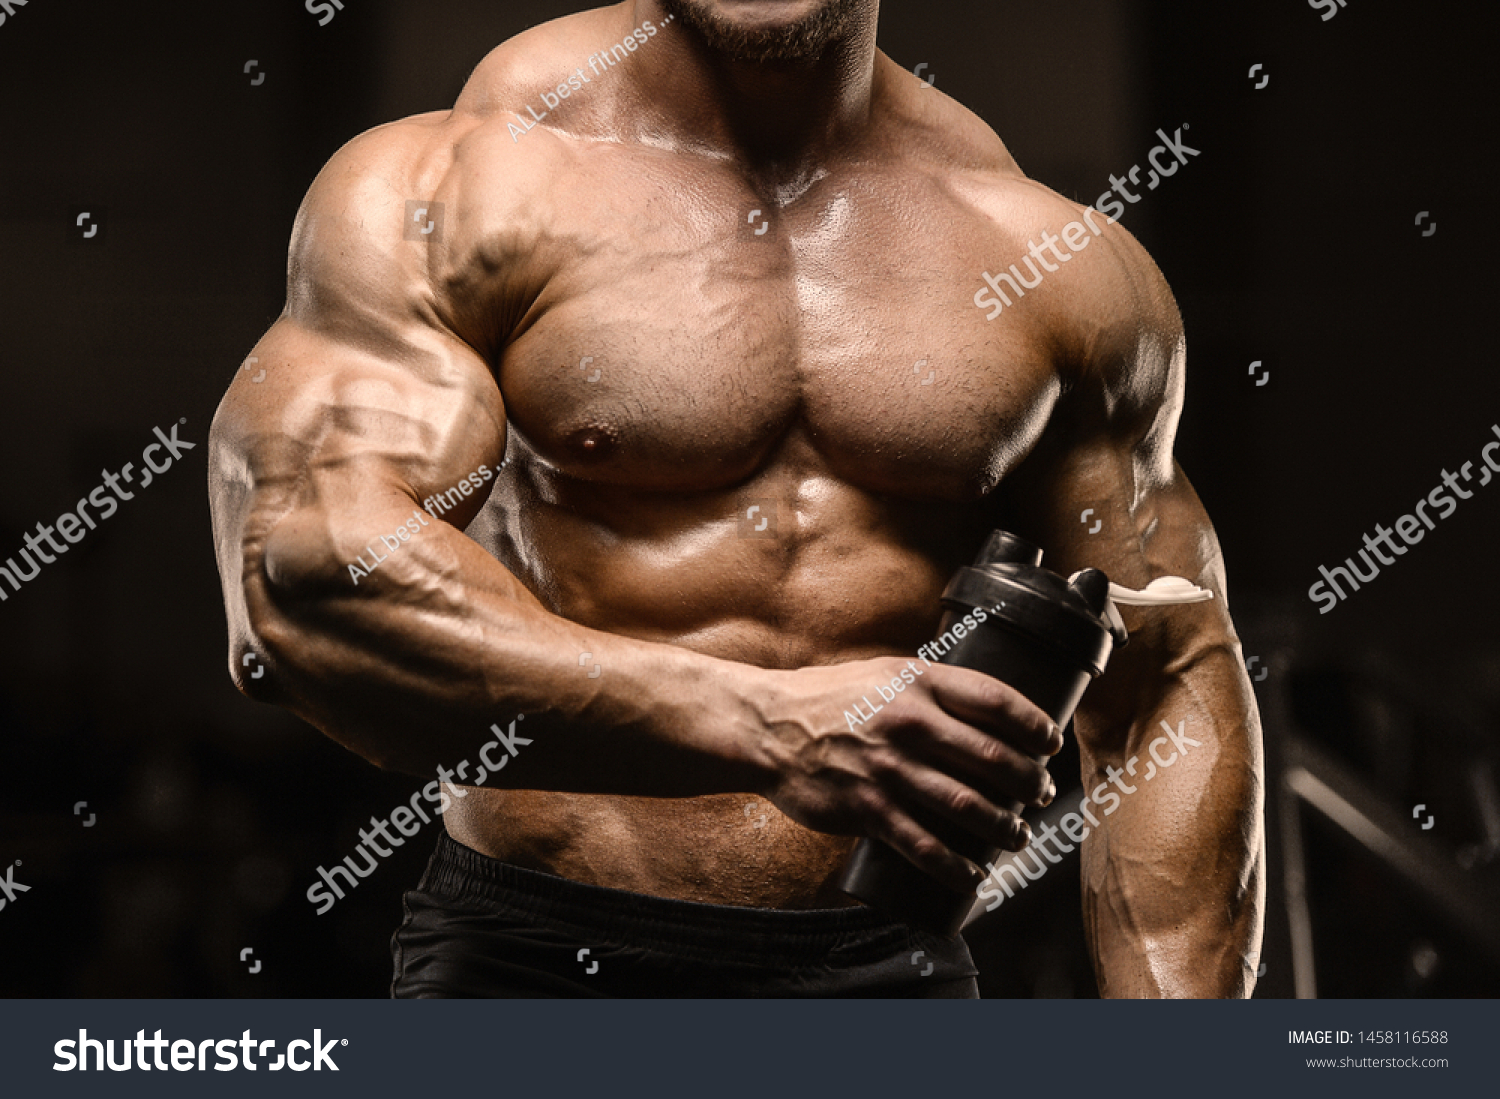 Sport Muscular Fitness Man Drinking Water Stock Photo Edit Now 1458116588